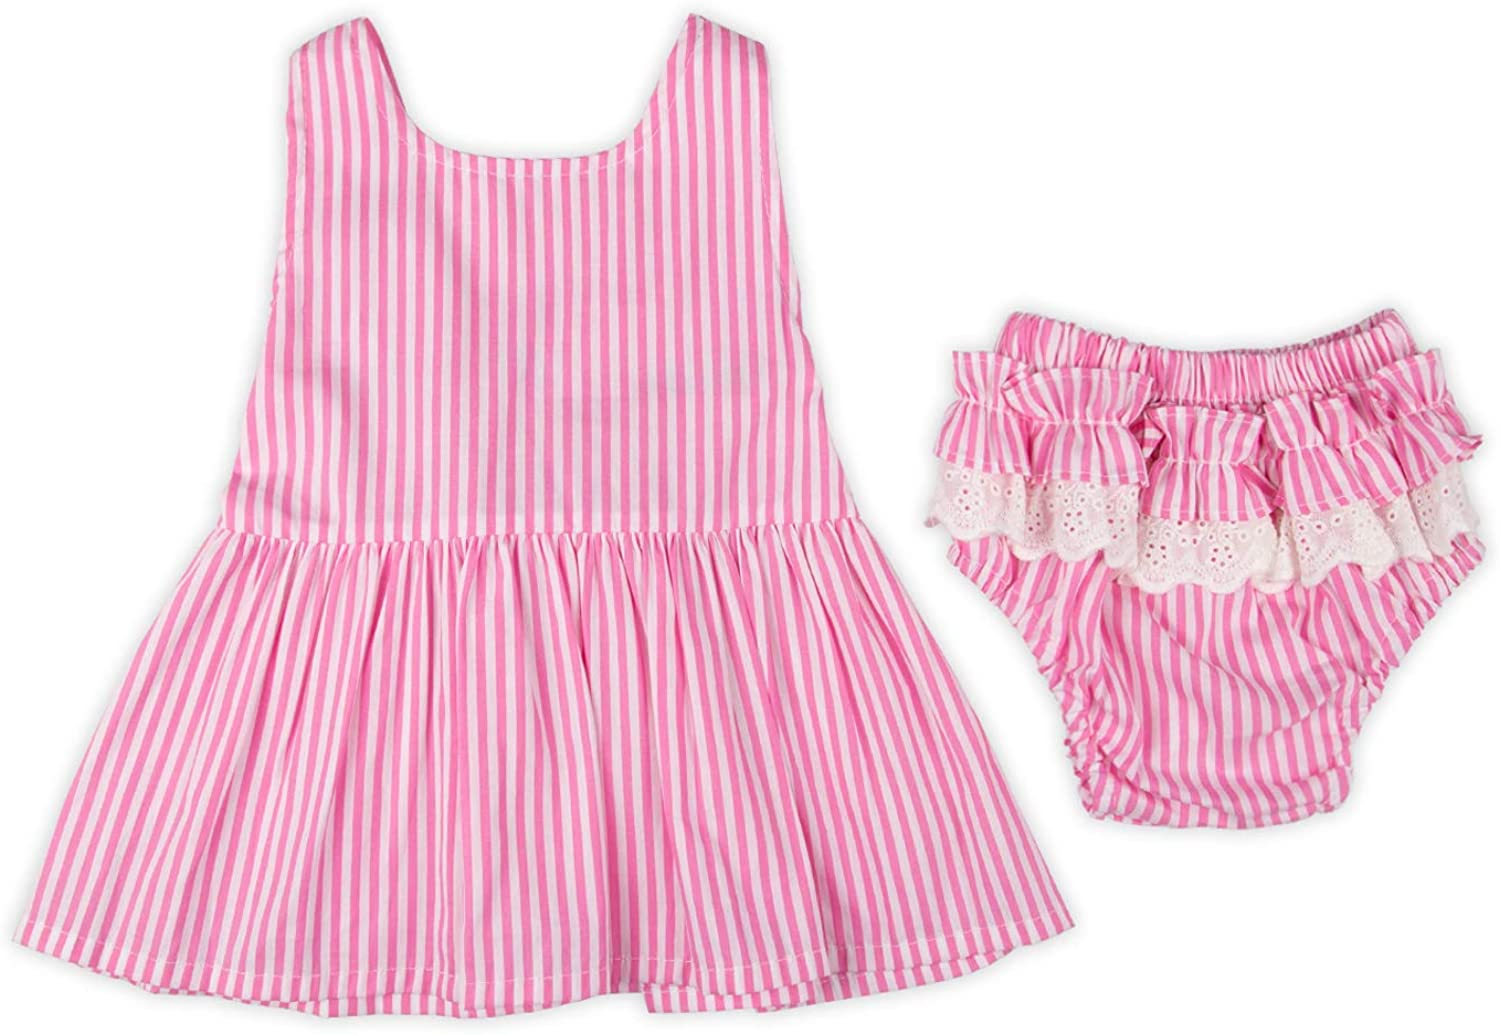 Baby Girl Summer Outfits Big Bow Knot Dress Shorts Set